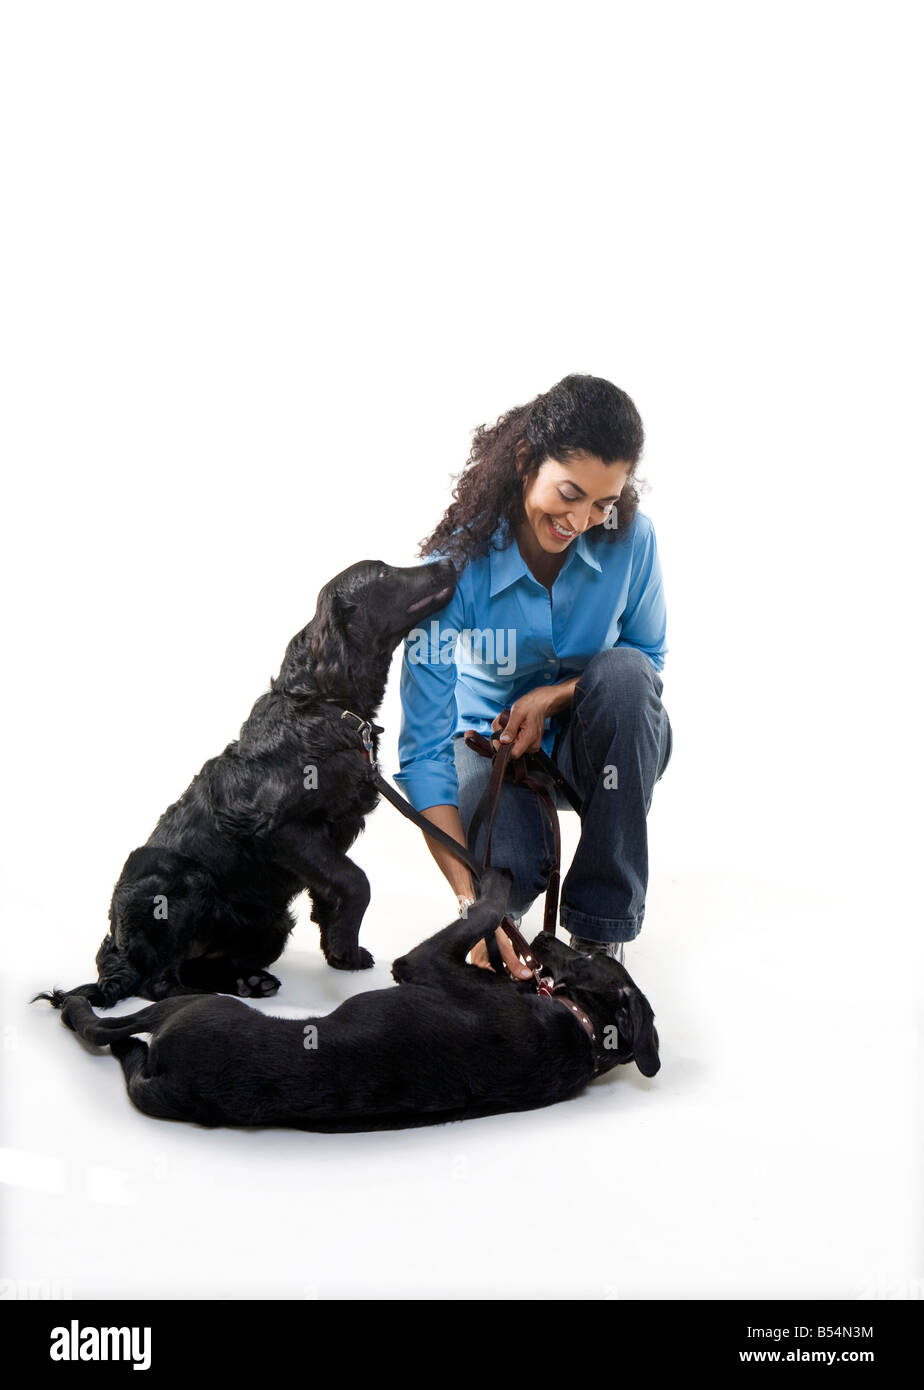 woman plays with two black dogs on white background - Stock Image